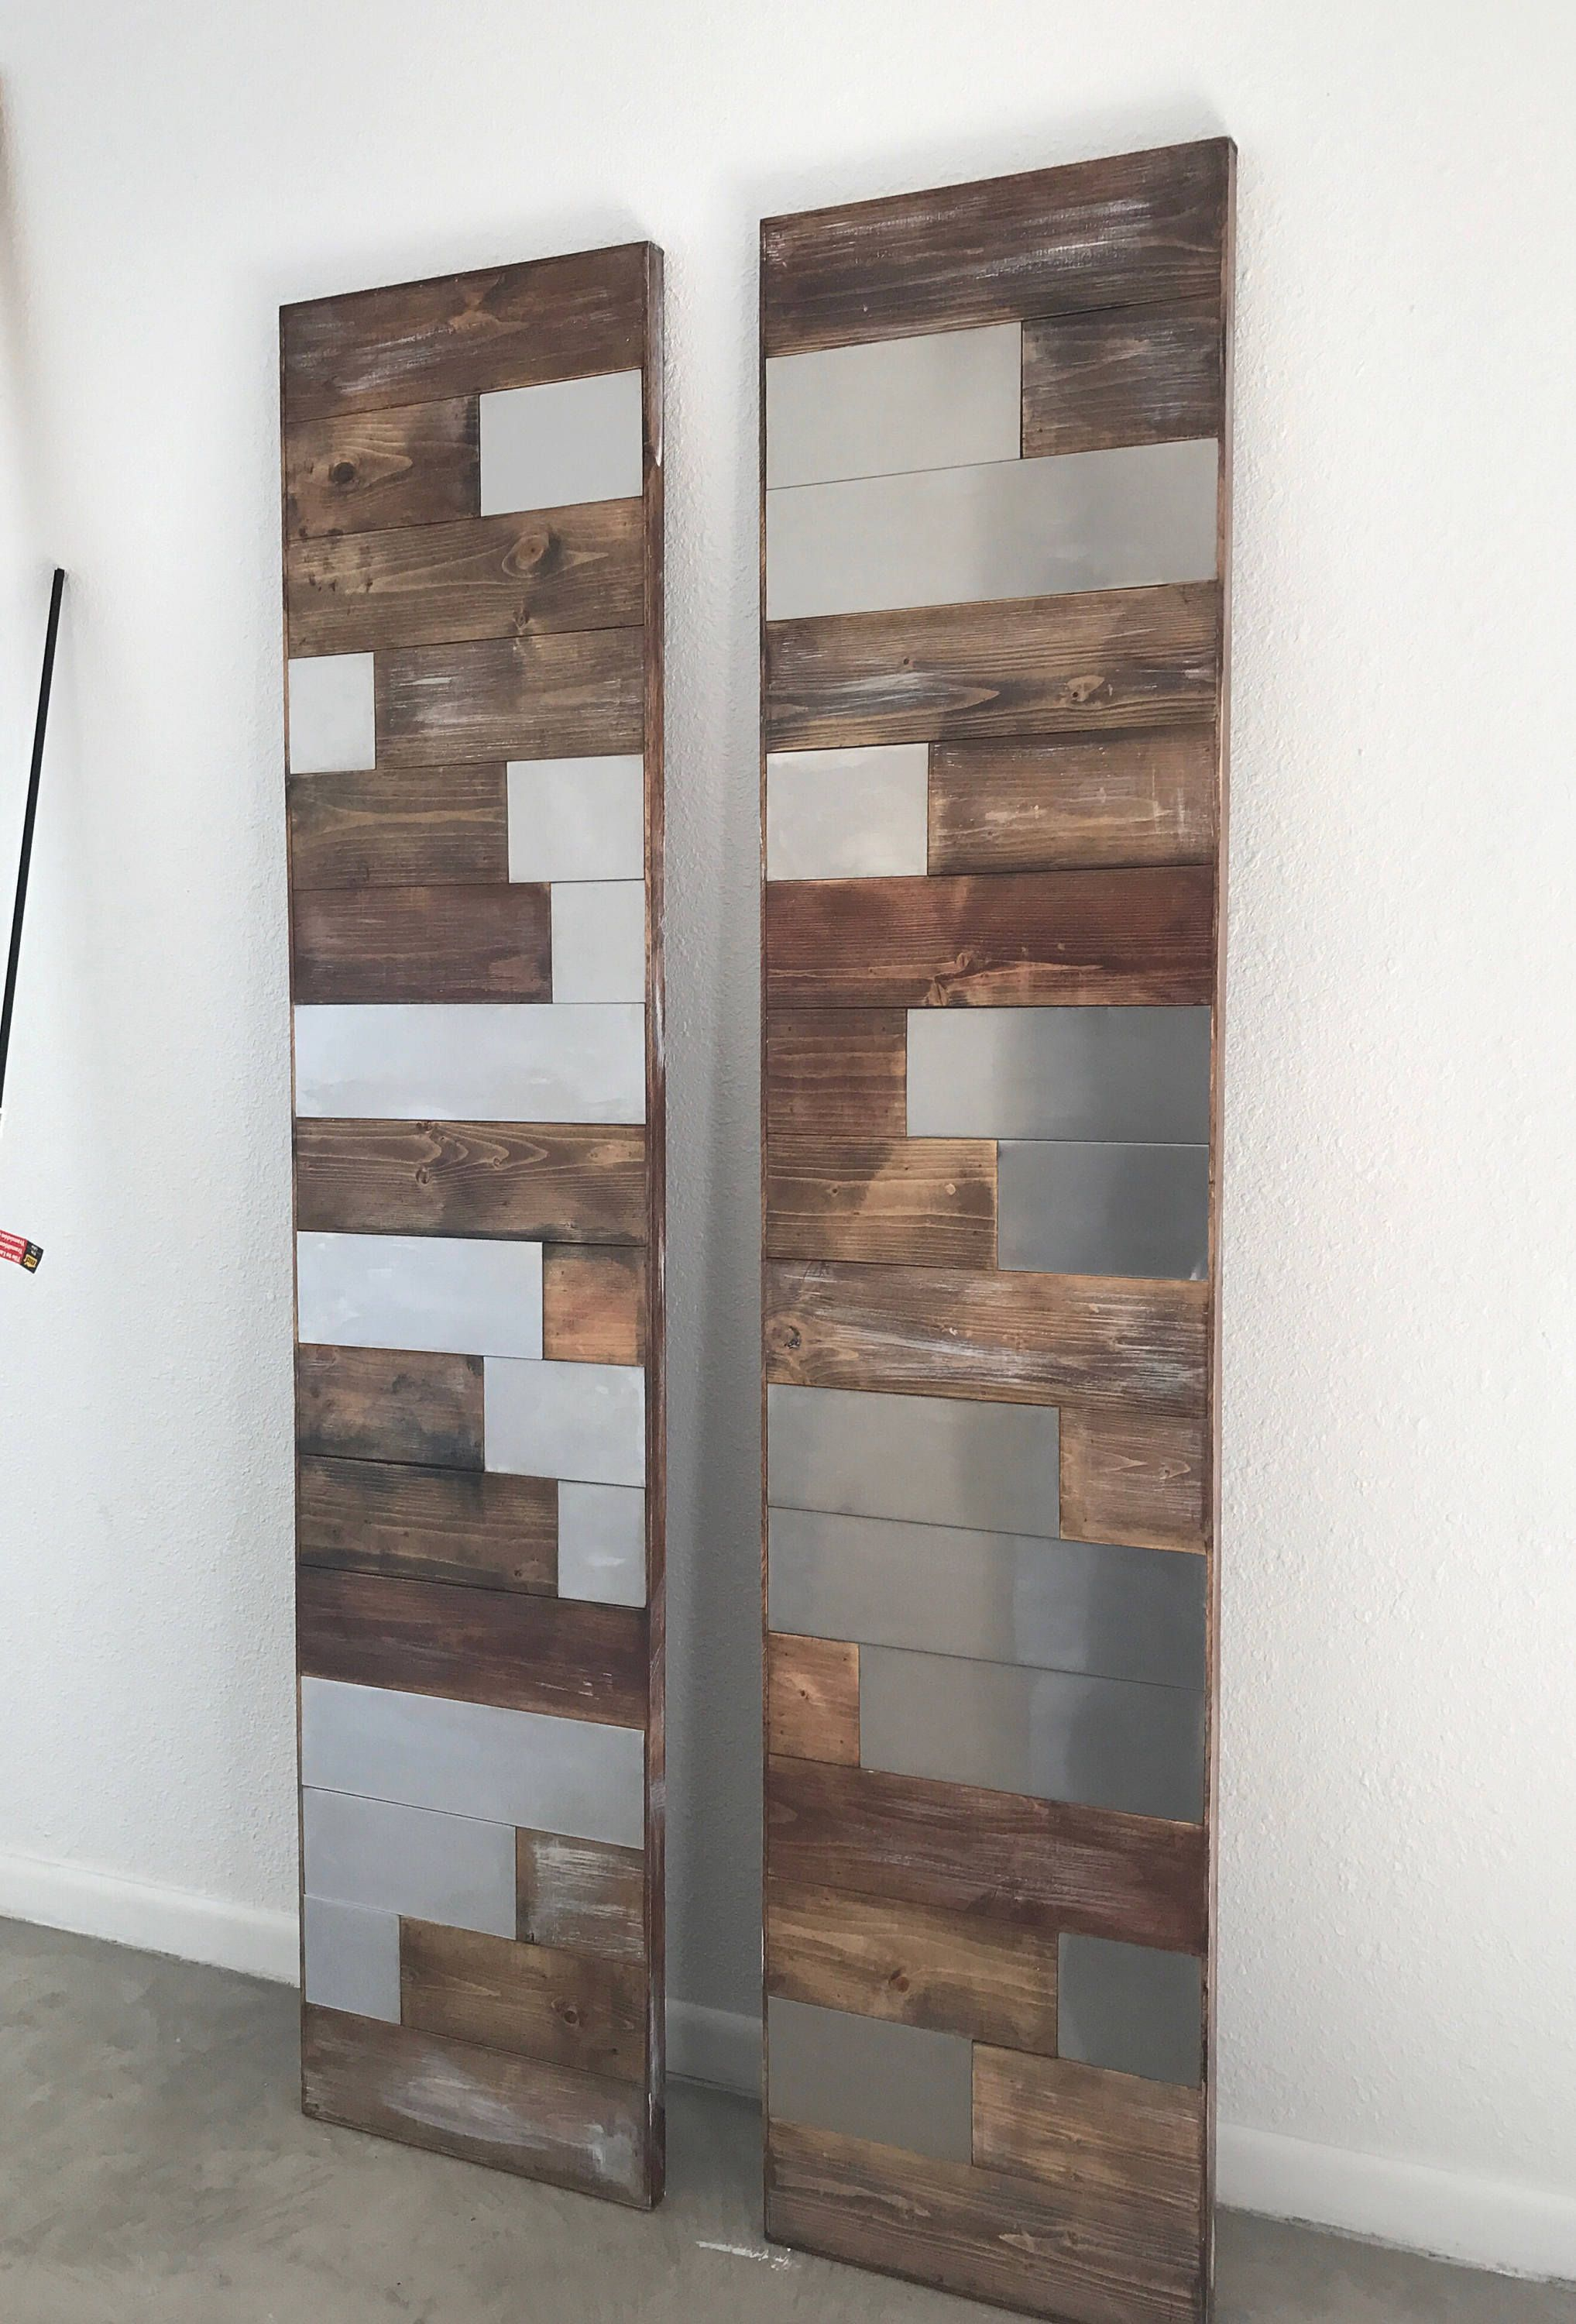 Horizontal Staggered Plank Wood And Metal Barn Door Modern Barn Door Barn Door Metal Barn